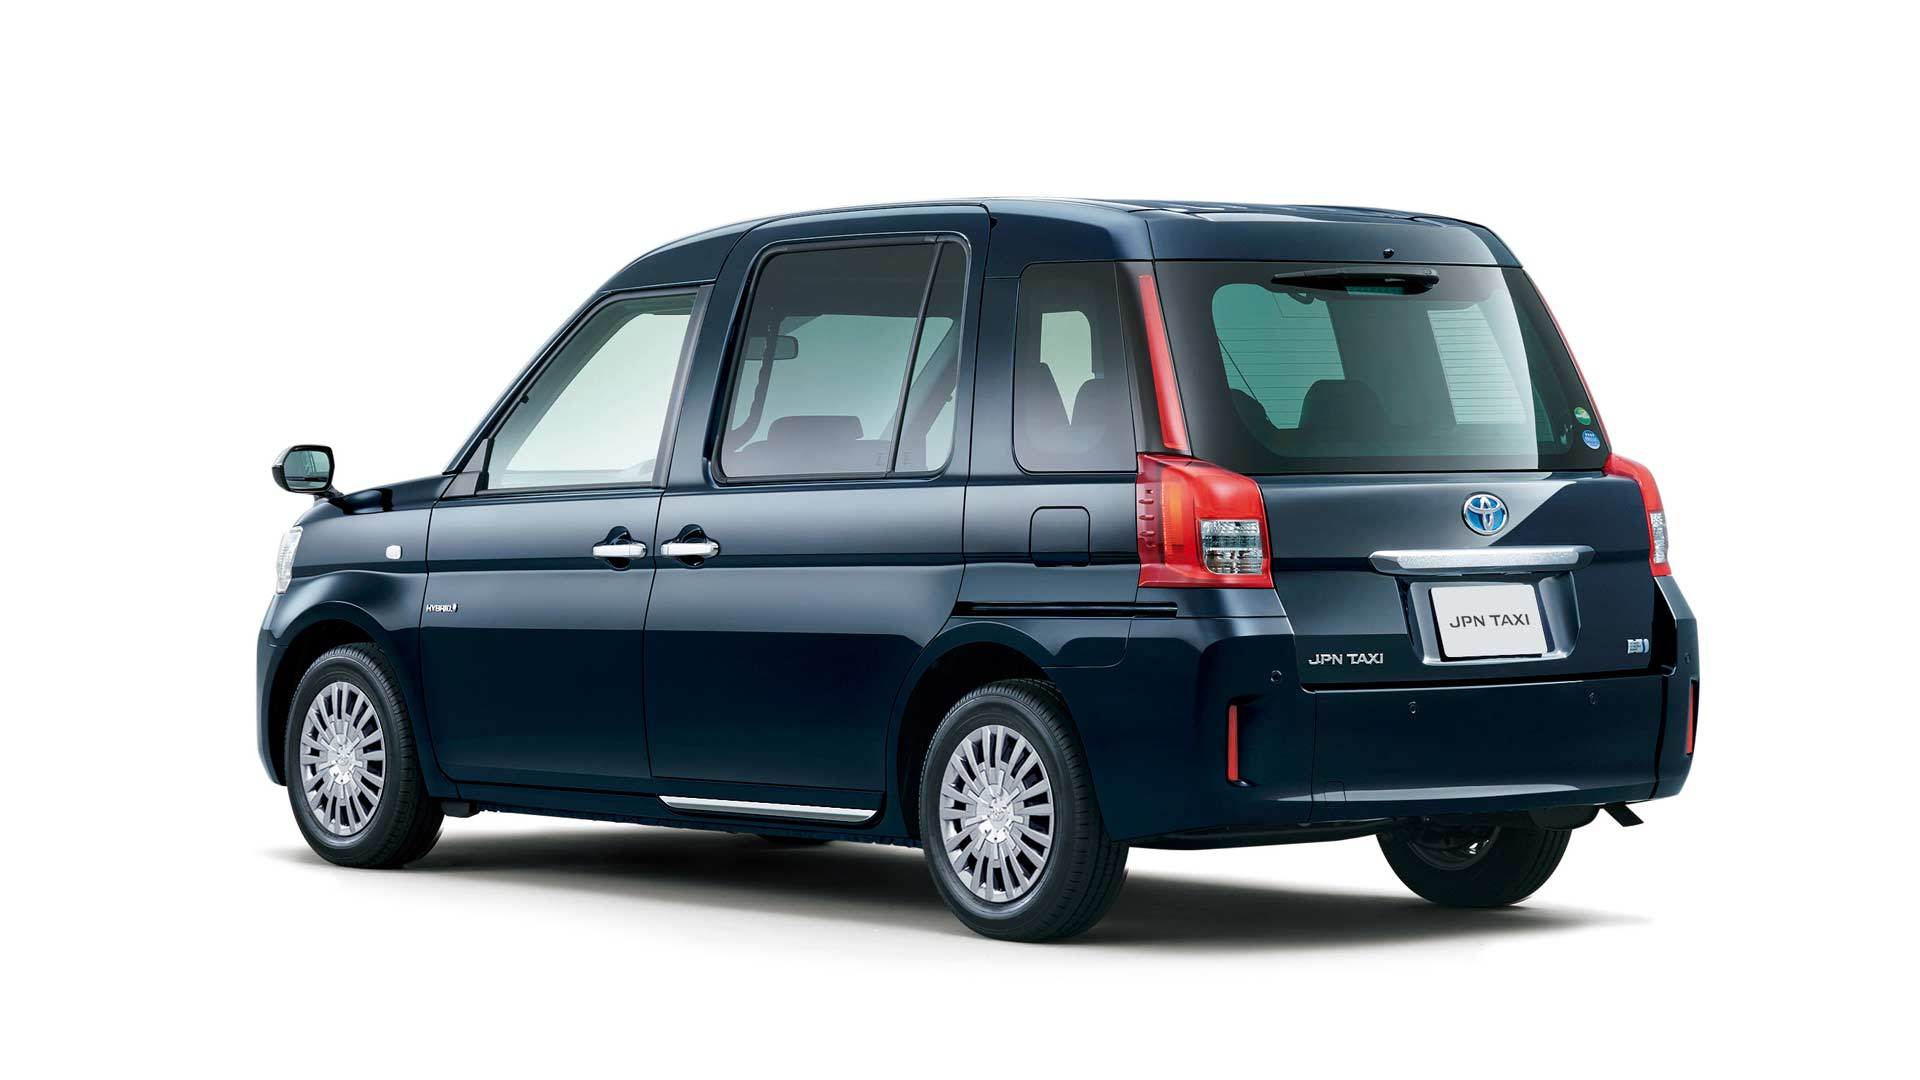 Toyota Jpn Taxi Aims To Be The Symbol Of Tokyo Autodevot